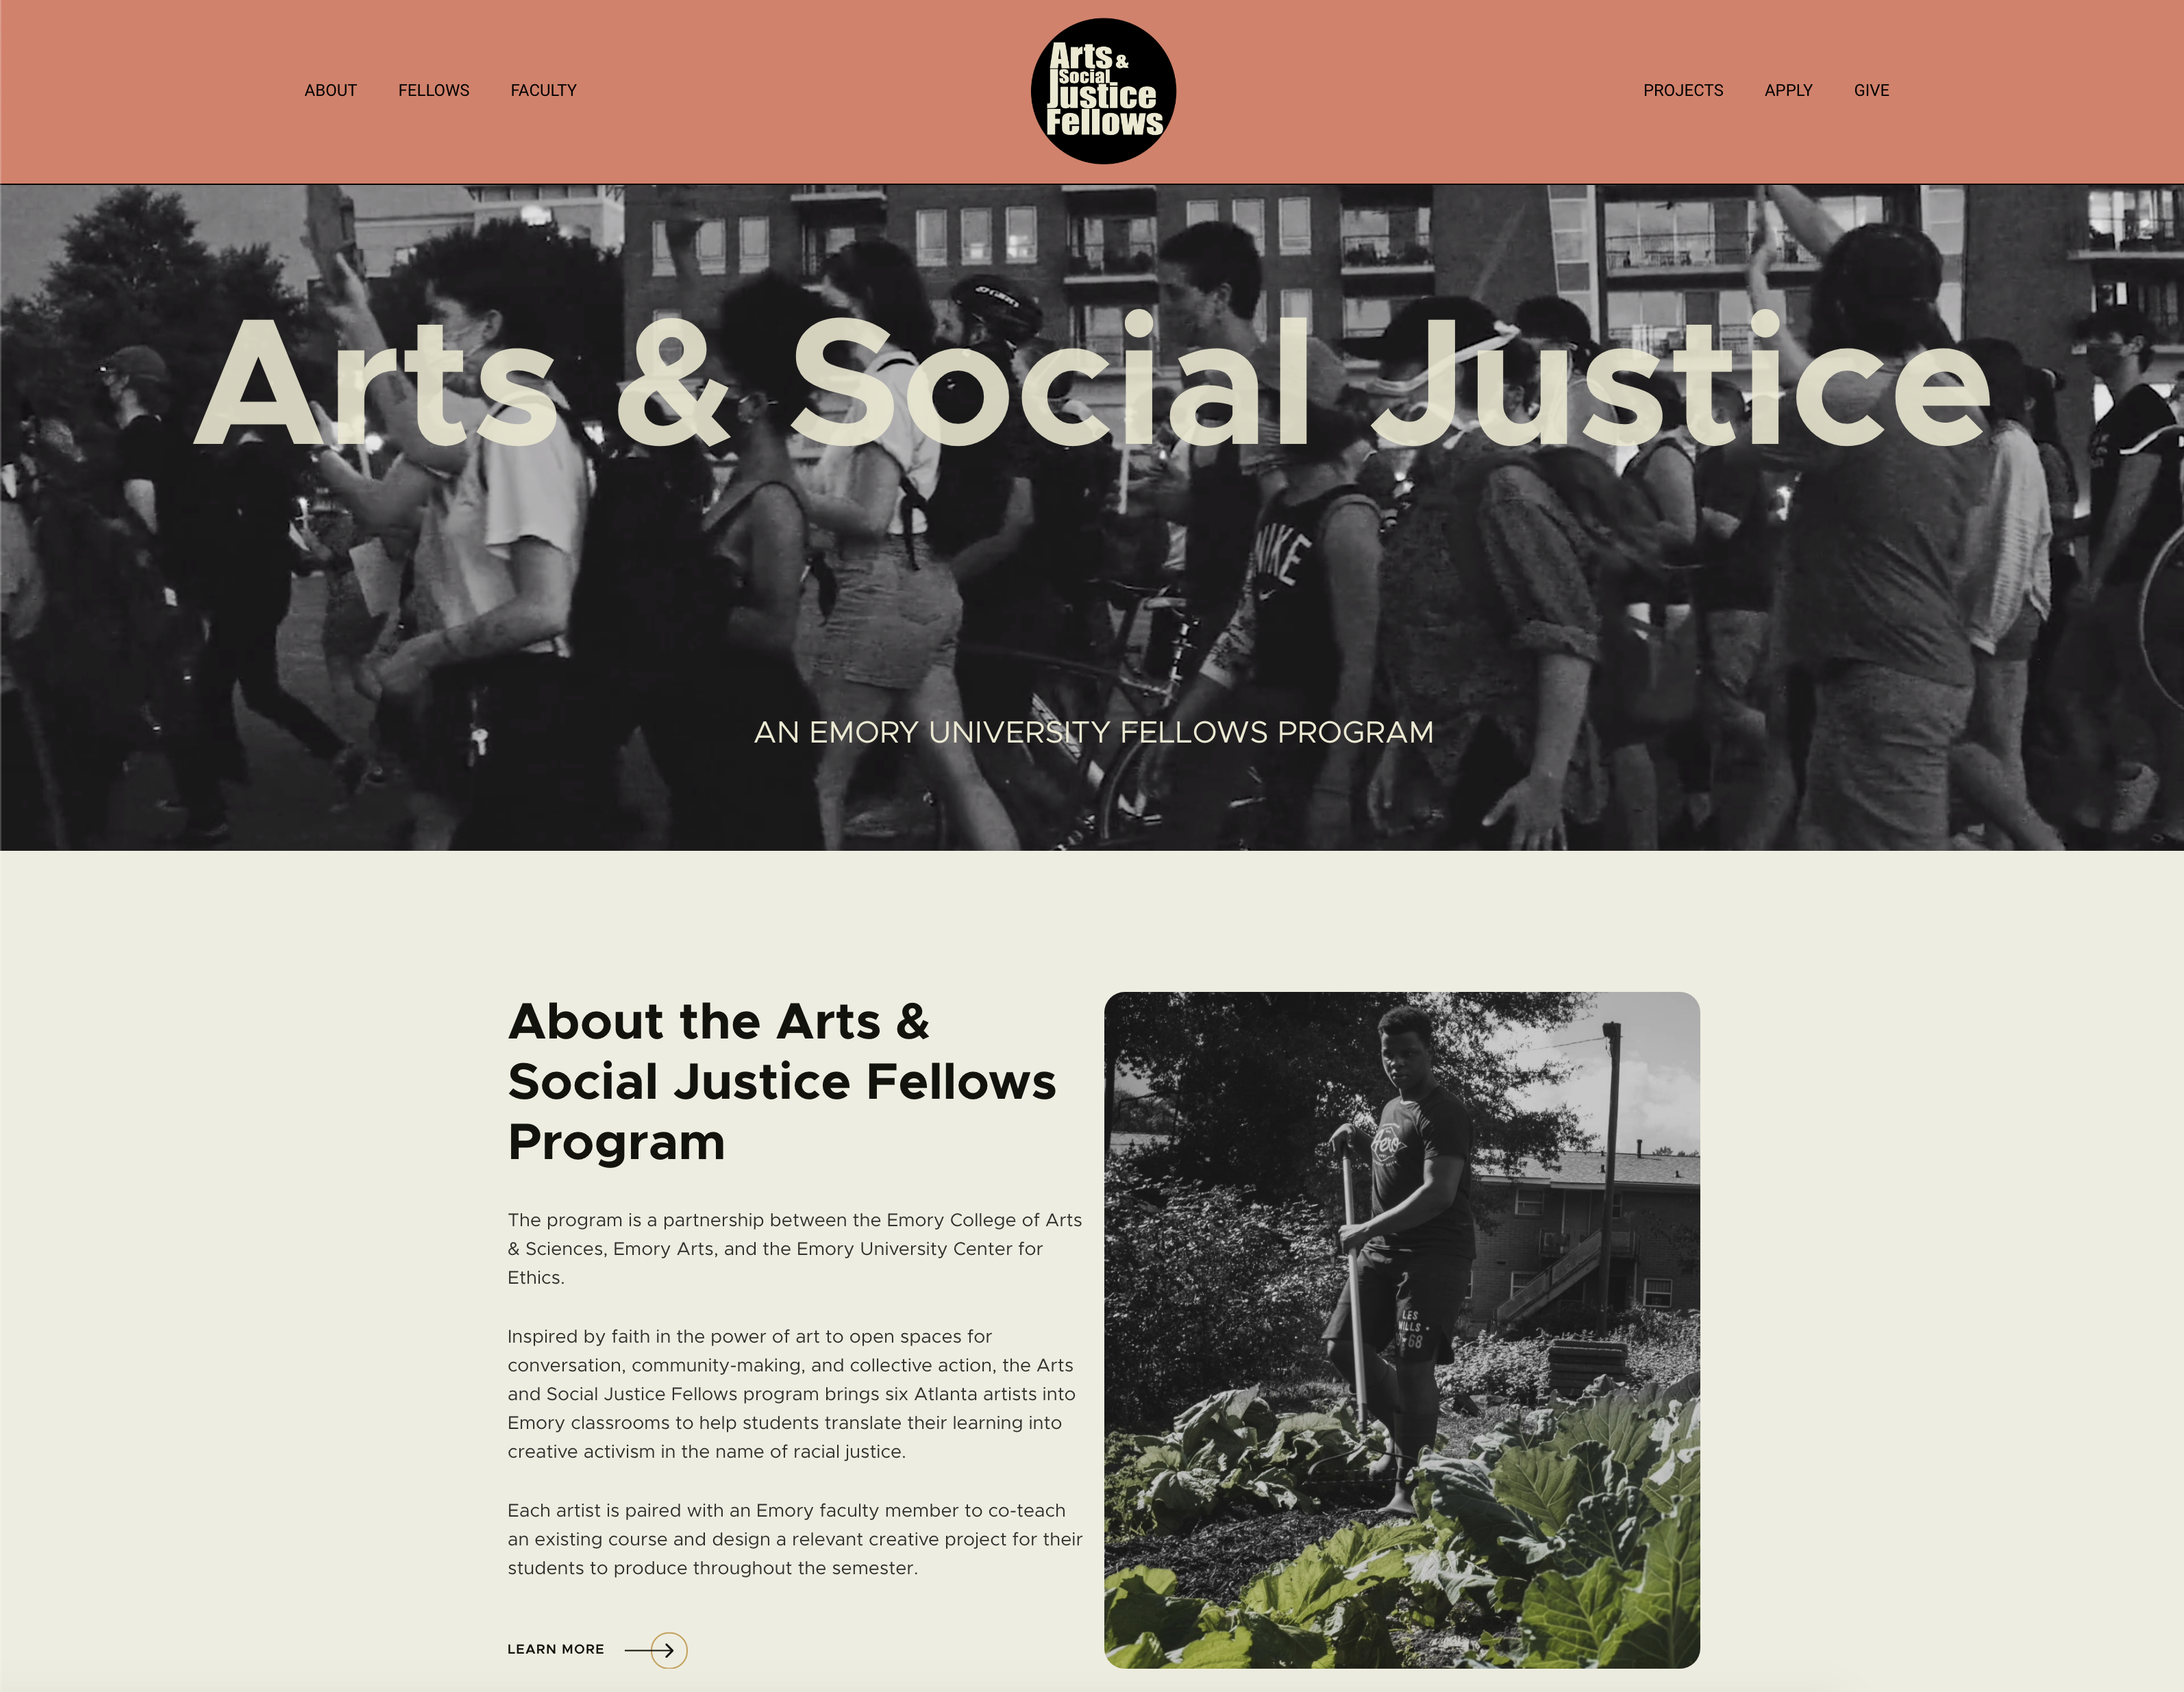 """Website landing page featuring black and white animation header of activists and artists, with text """"Arts & Social Justice: An Emory University Fellows Program"""" laid overtop. Top of website features ASJ logo against salmon colored background. Body section below photo header includes photo and text explaining the program."""